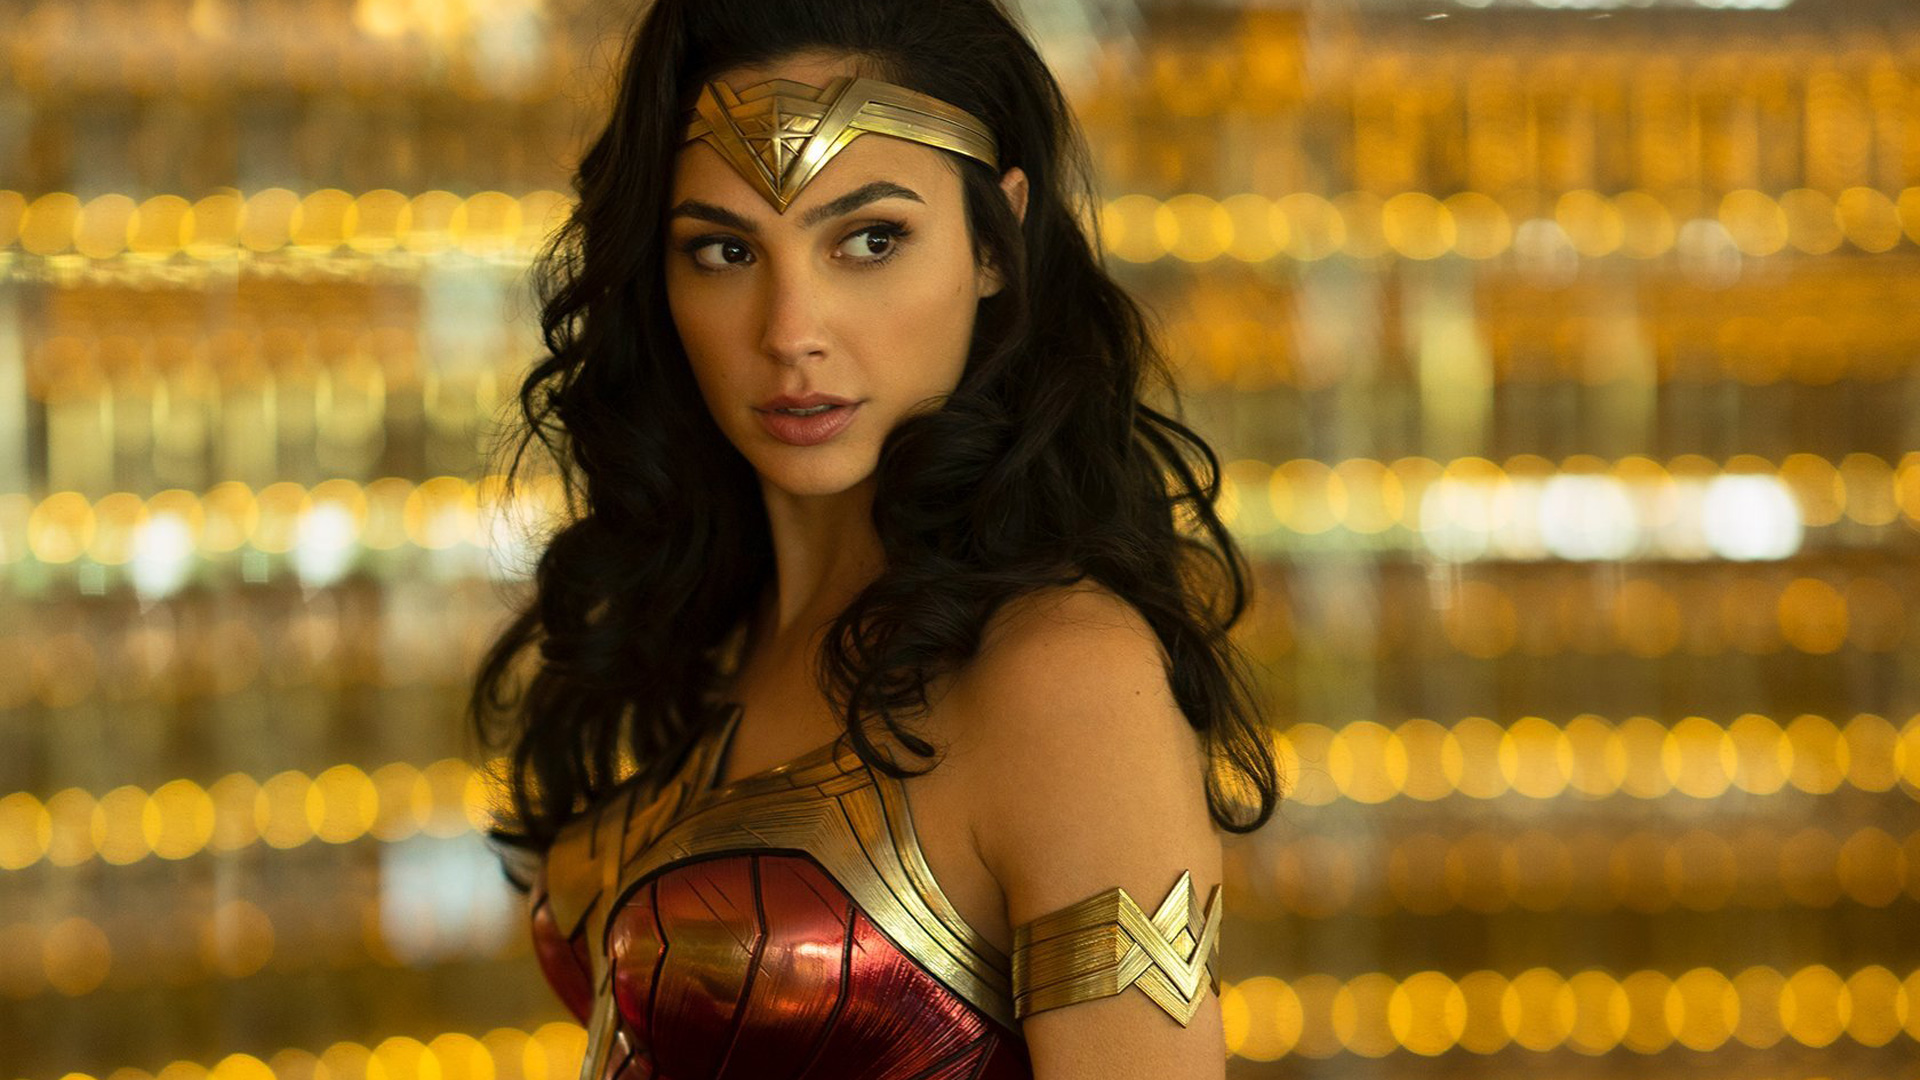 Gal Gadot Wonder Woman 1984 Movie Hd Movies 4k Wallpapers